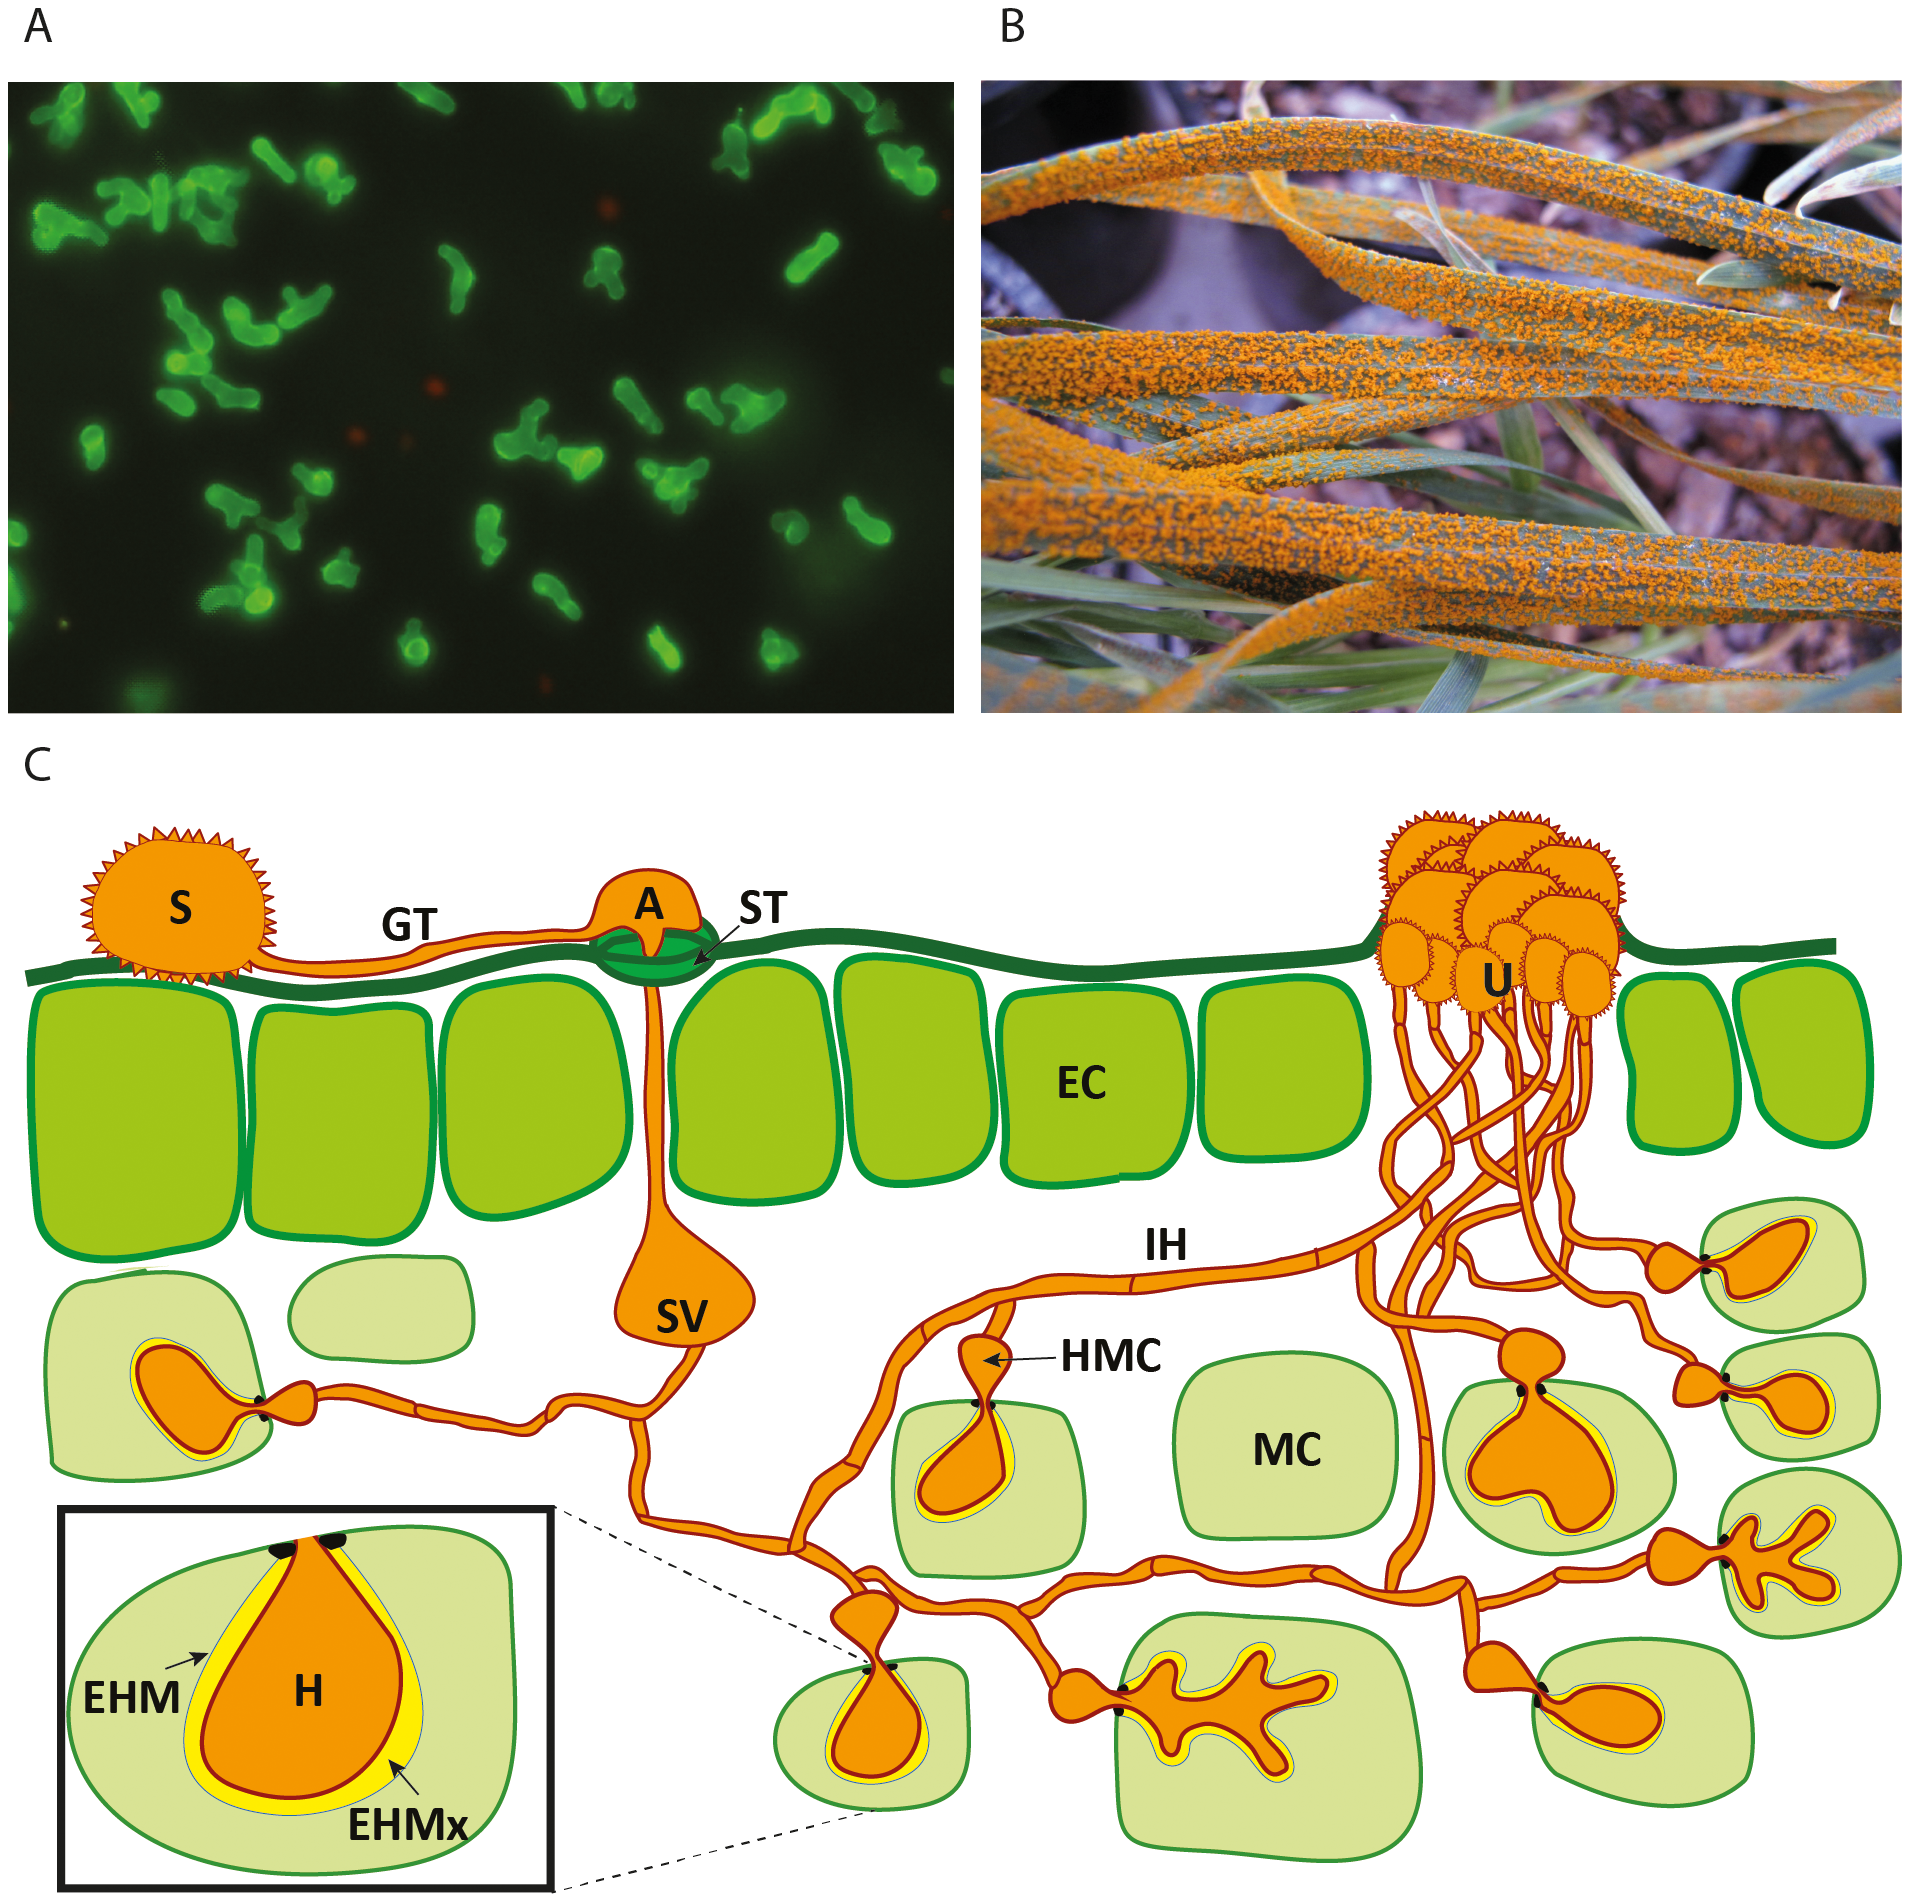 Schematic representation of the developmental phases of rust infection on wheat and example of macroscopic symptoms.